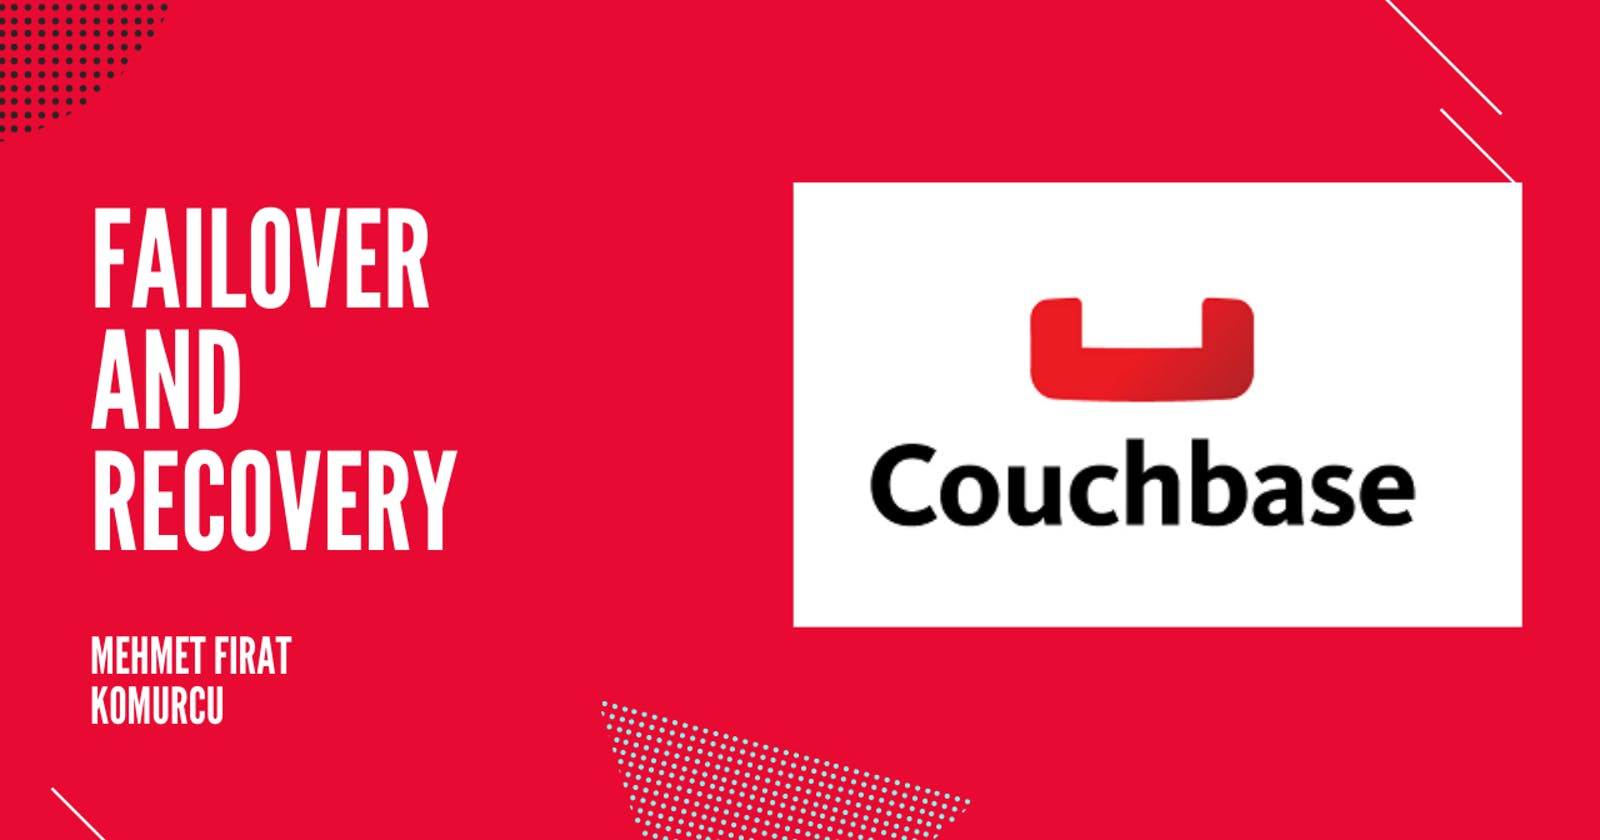 Couchbase: Failover and Recovery